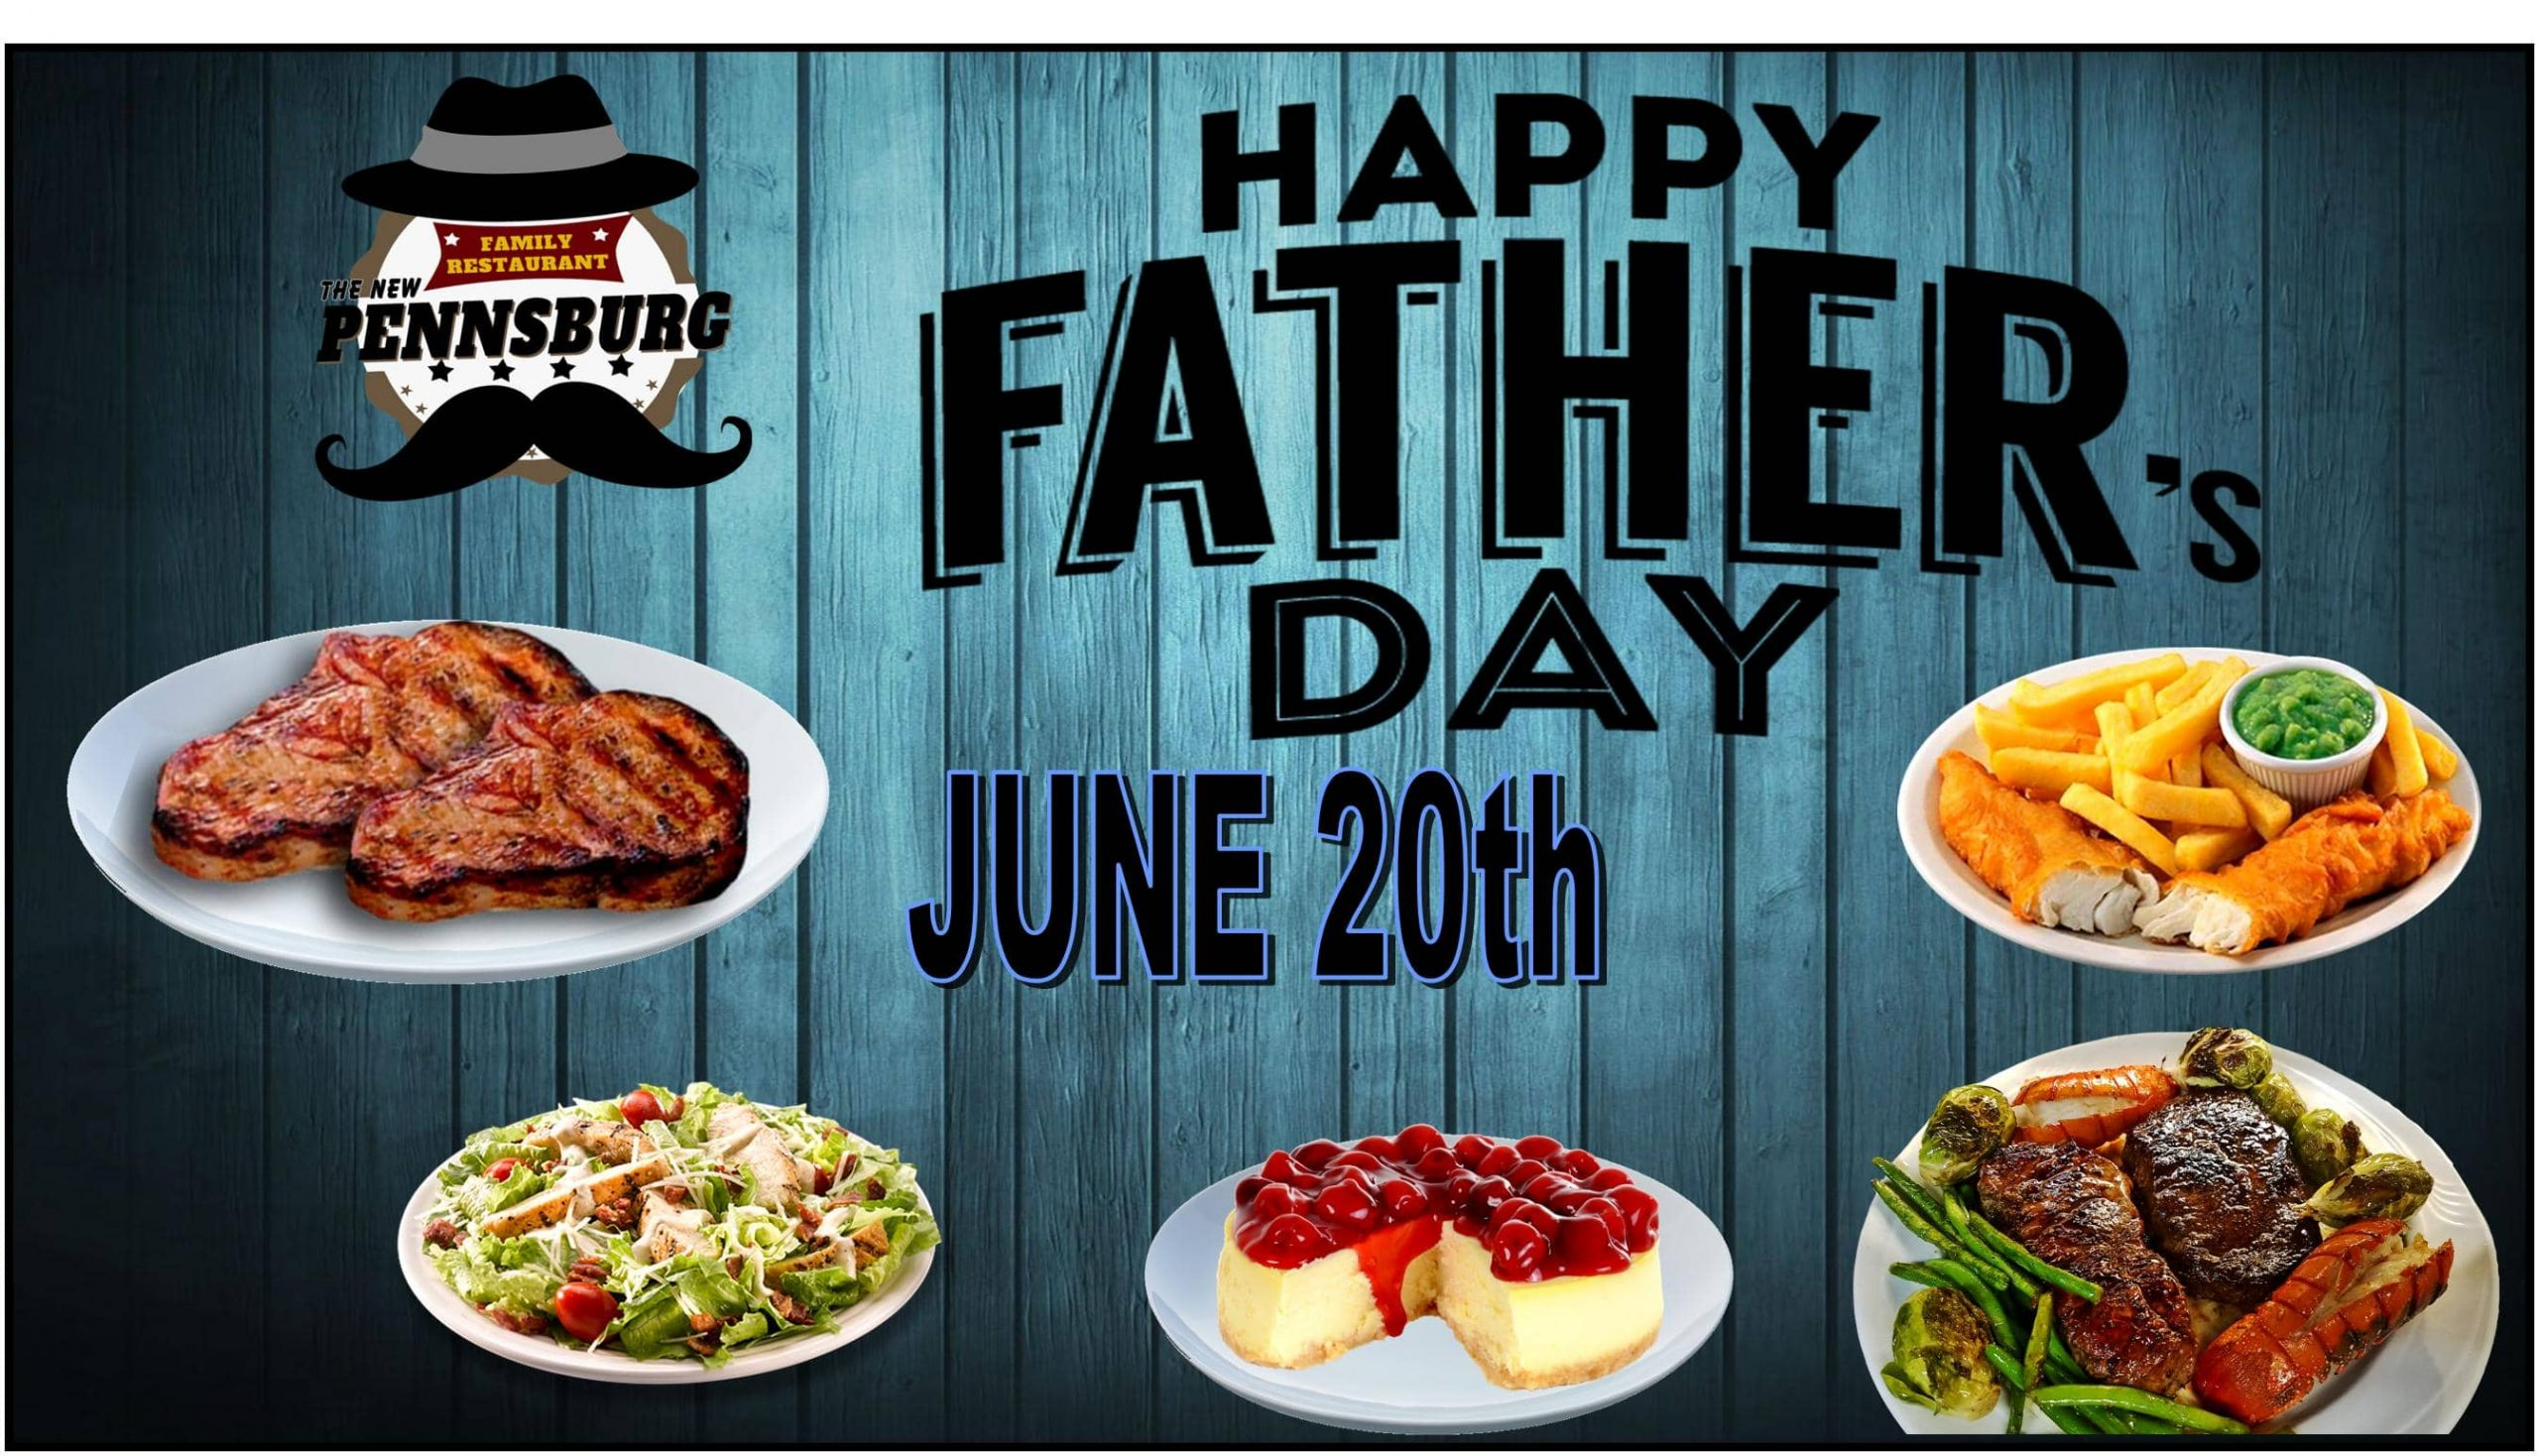 Pennsburg Diner Fathers day 2021